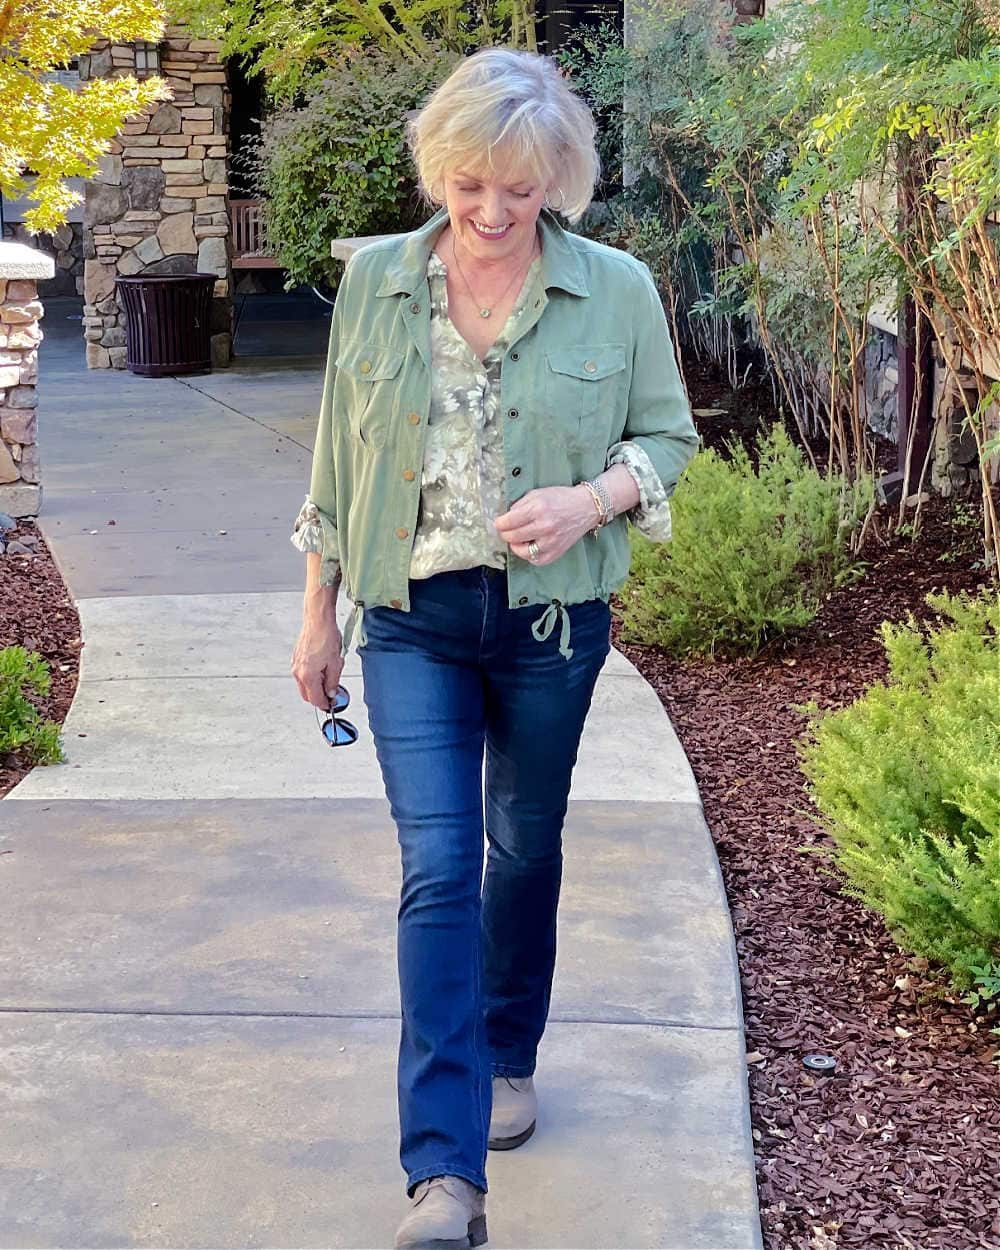 blond woman walking in itty bitty bootcut jeans and green jacket